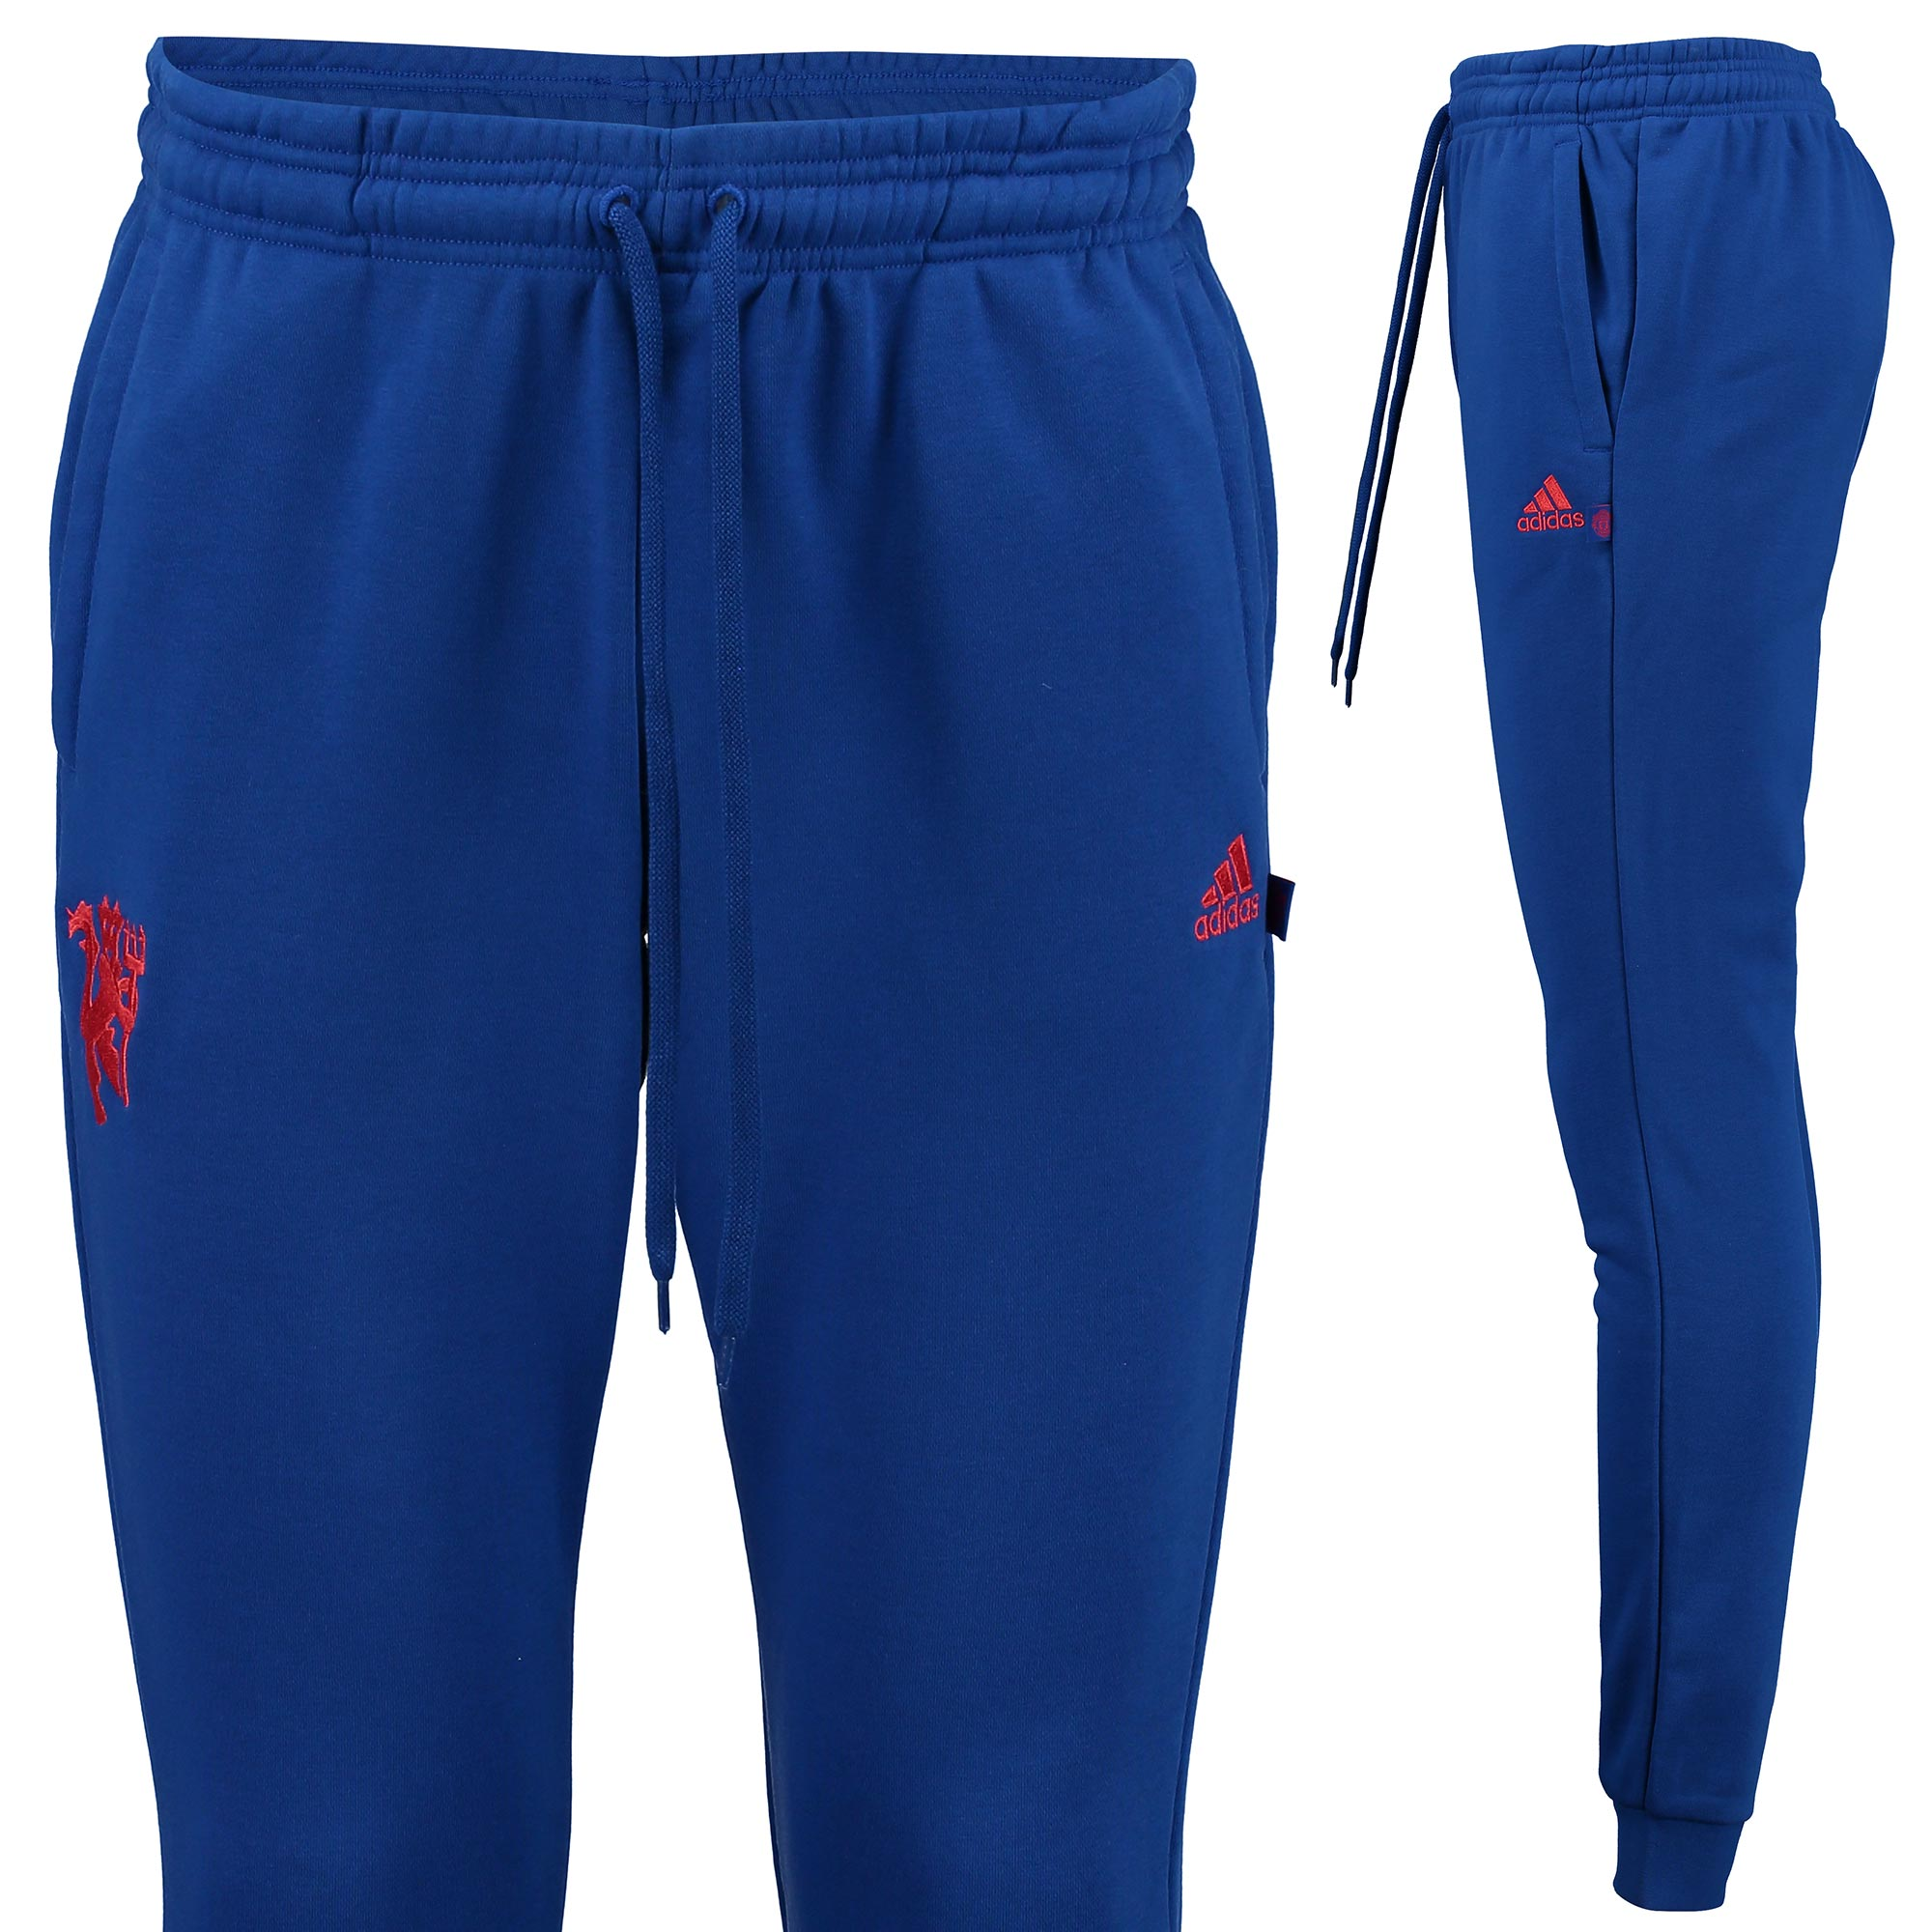 Manchester United Tapered Sweat Pant - Royal Blue